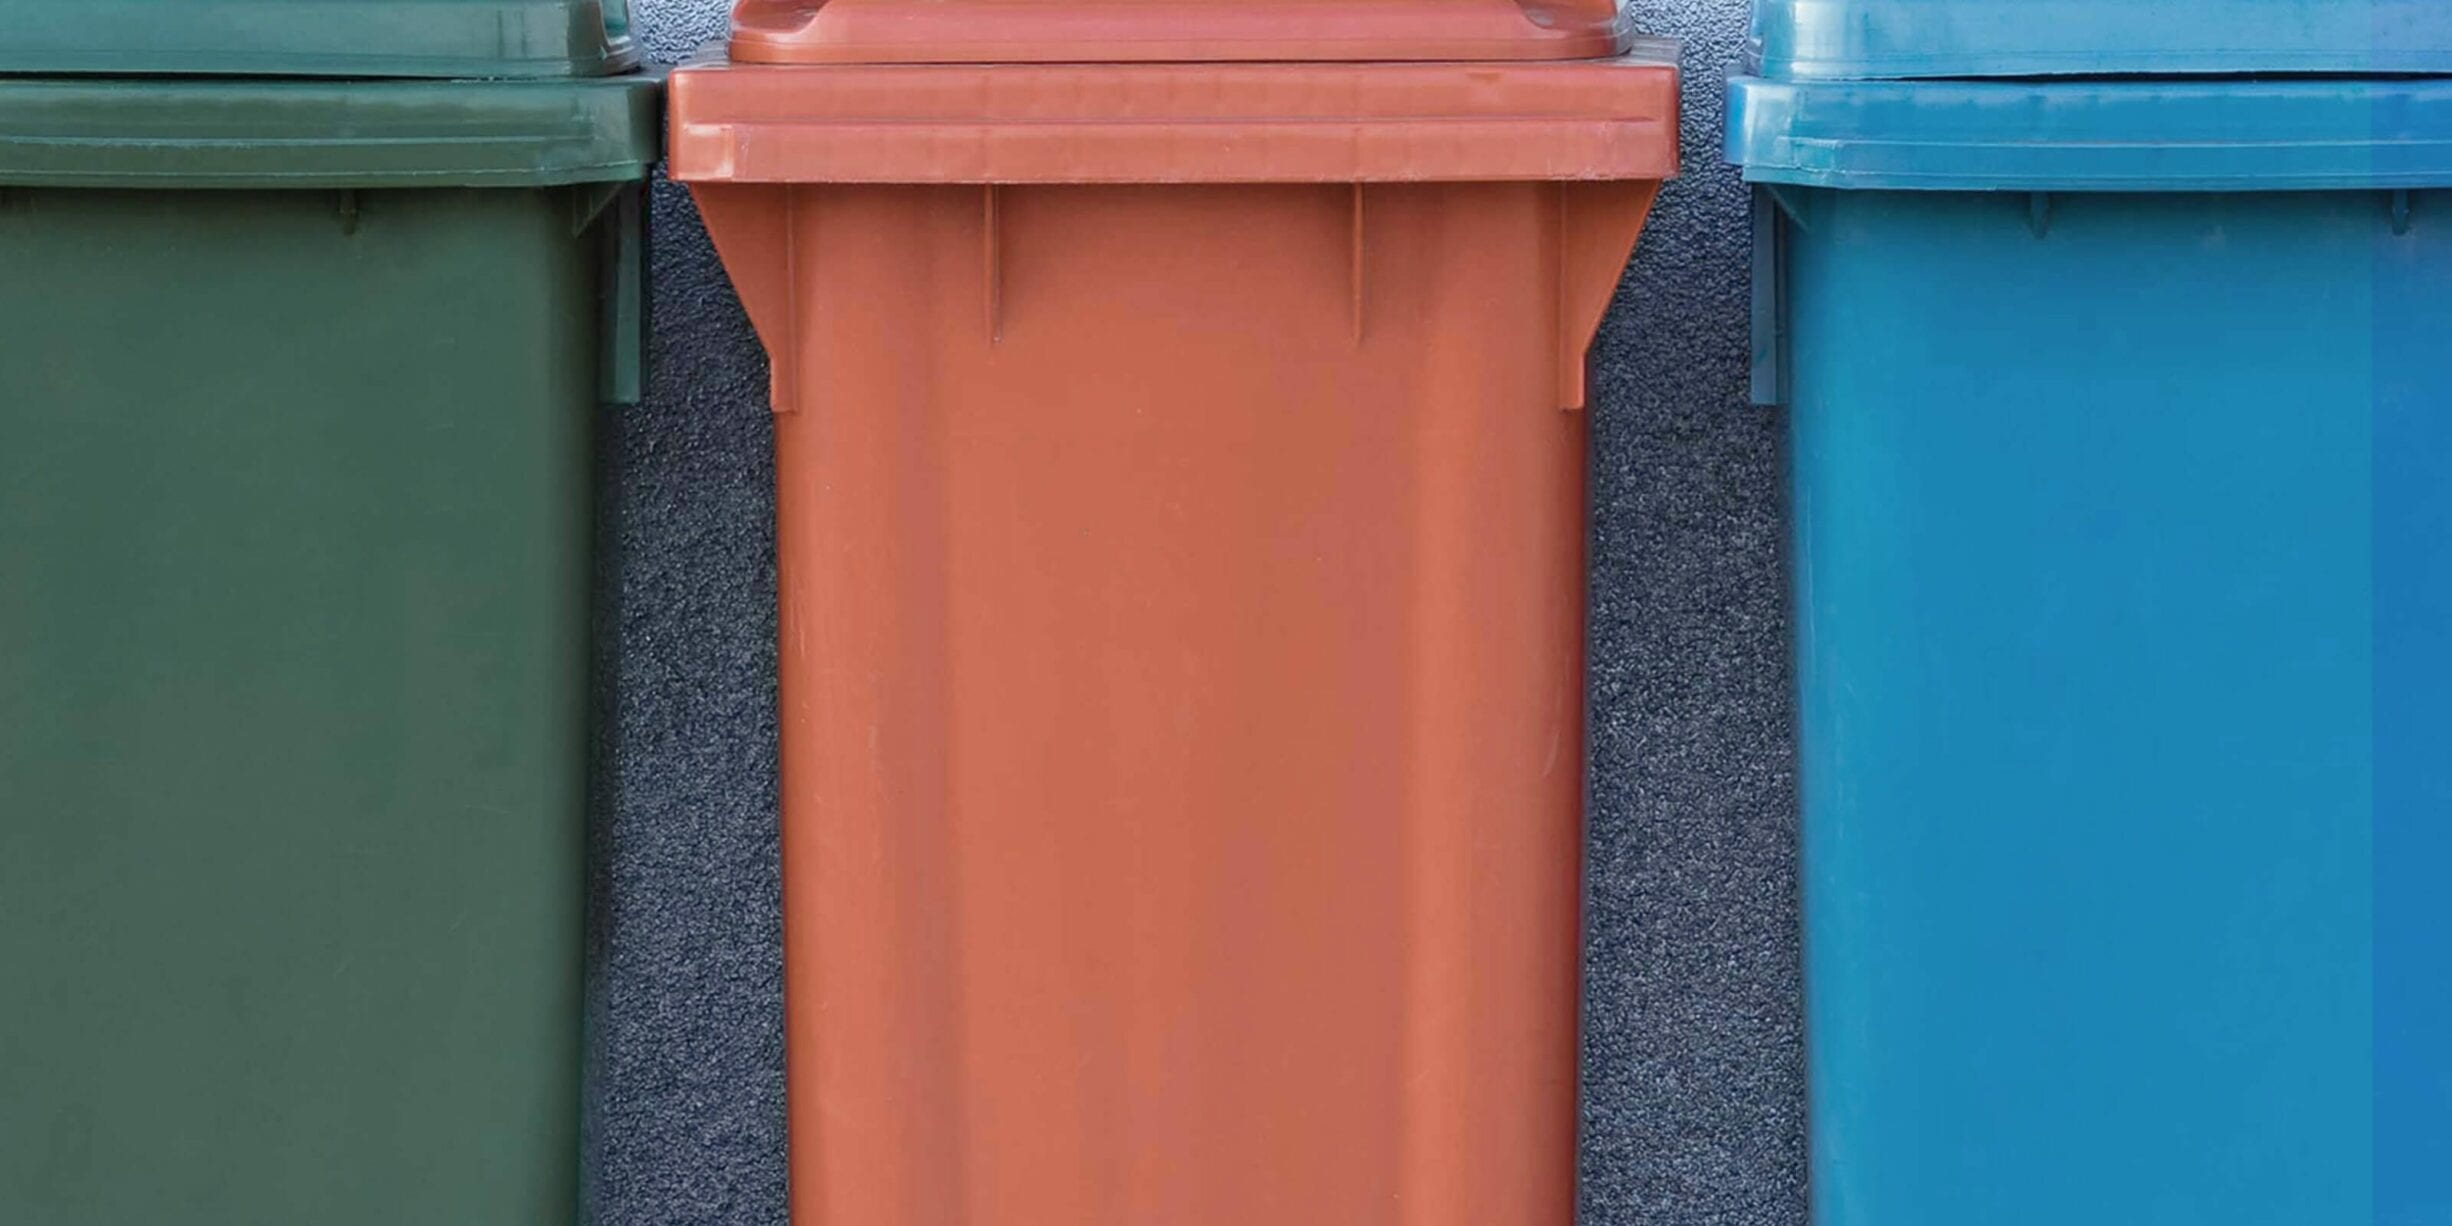 green, orange and blue bins with wheels